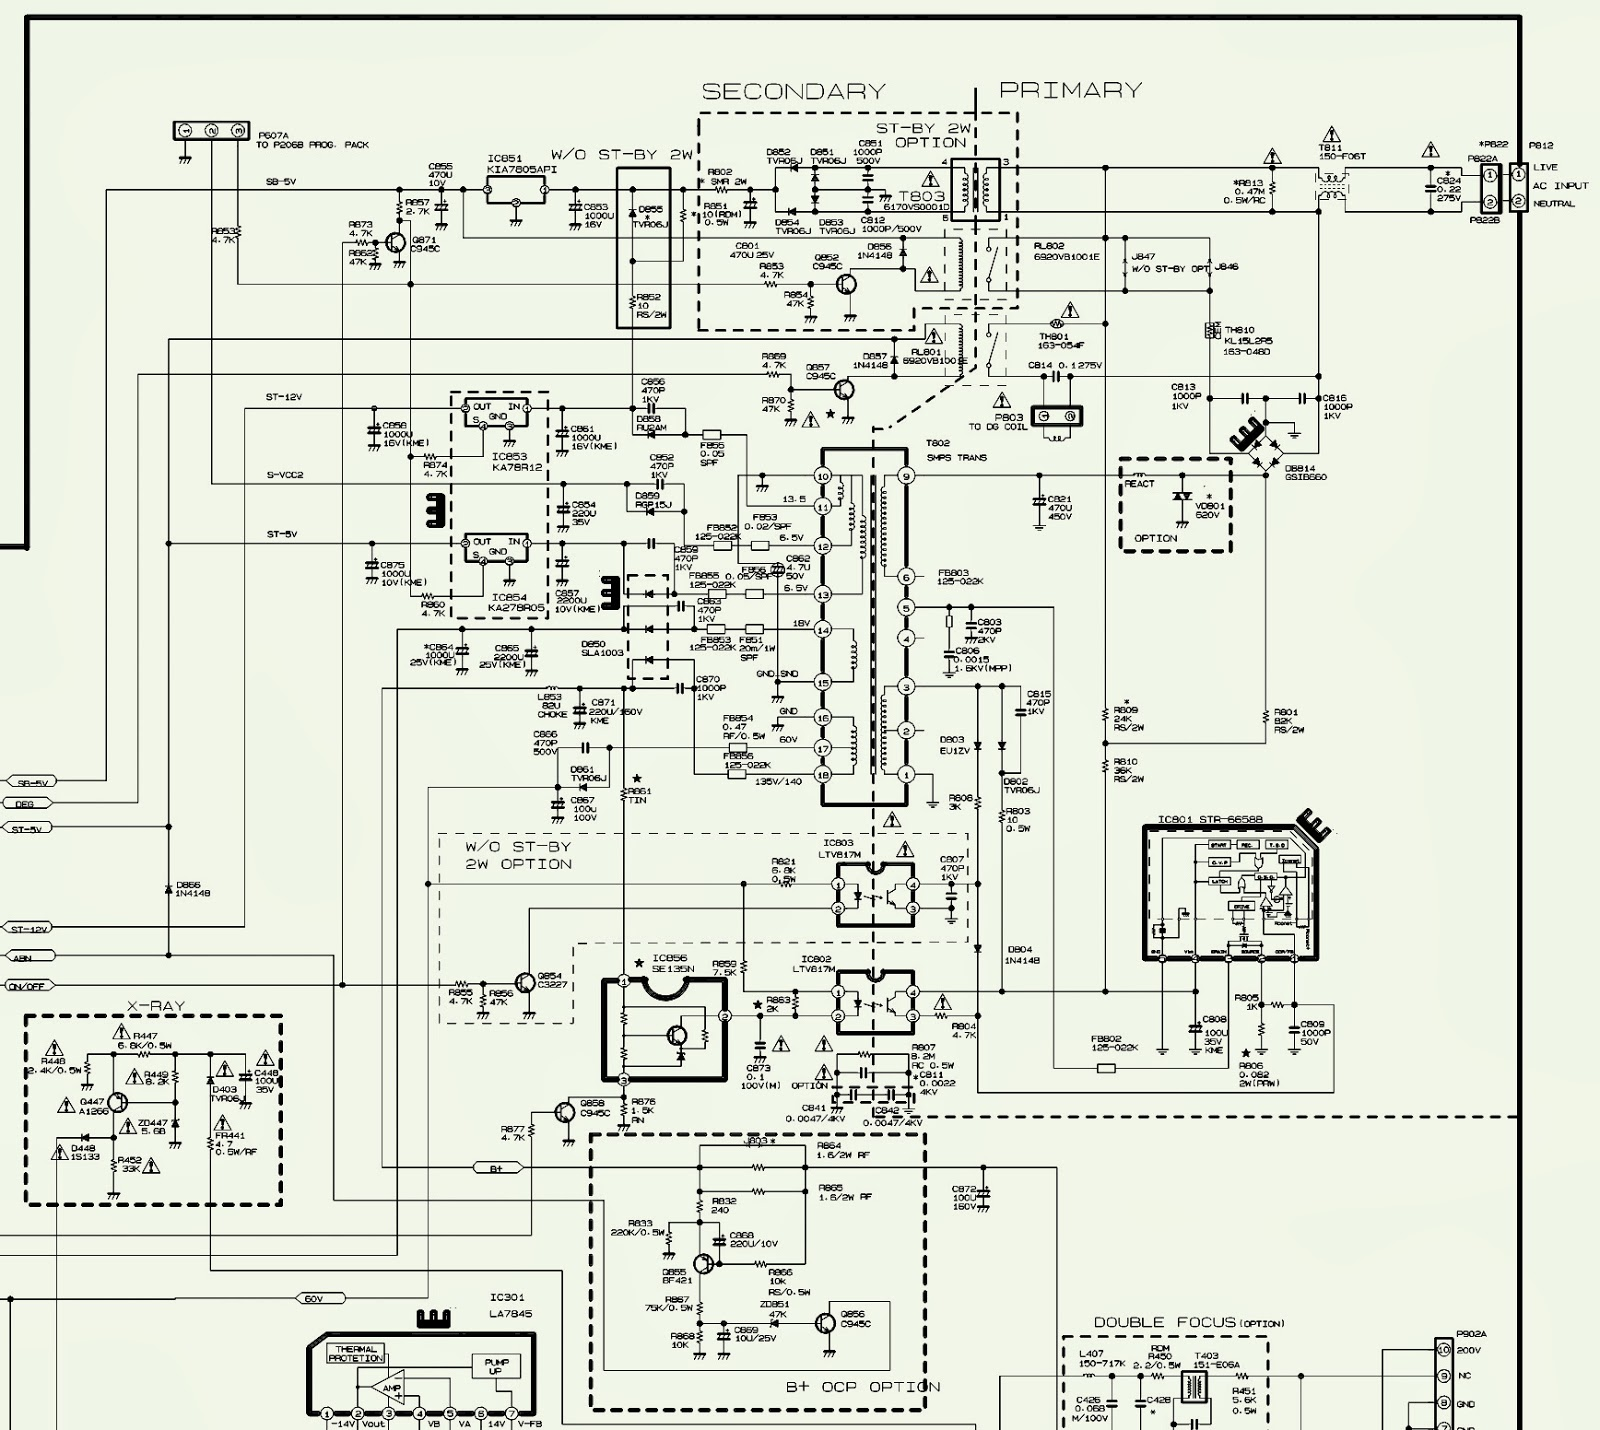 wiring diagram lg tv wiring diagram blogs smart tv hook up lg tv connection diagram [ 1600 x 1430 Pixel ]